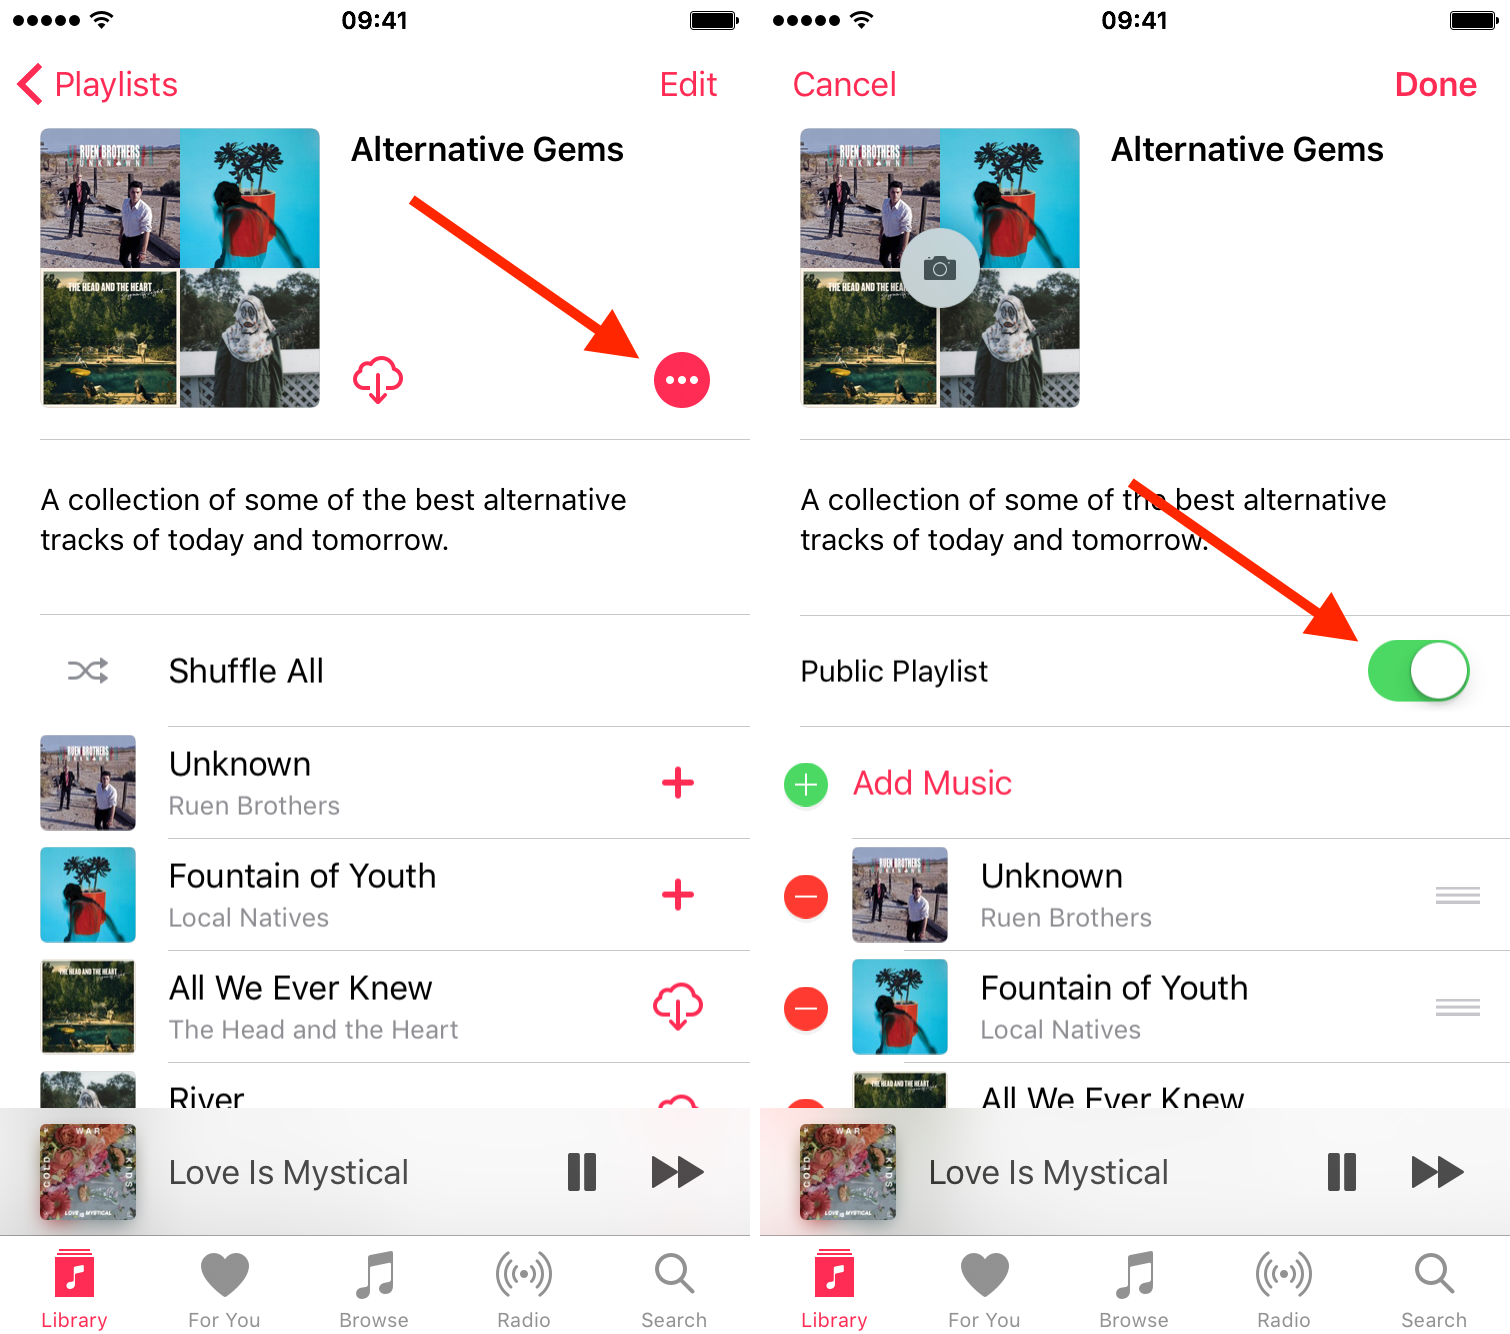 How To Share Apple Music Playlists Two Way Switch Wont Turn Off As Of Now Editing Where Both The Playlist Creator And Recipient Can Collaborate On Curating Isnt Yet Possible